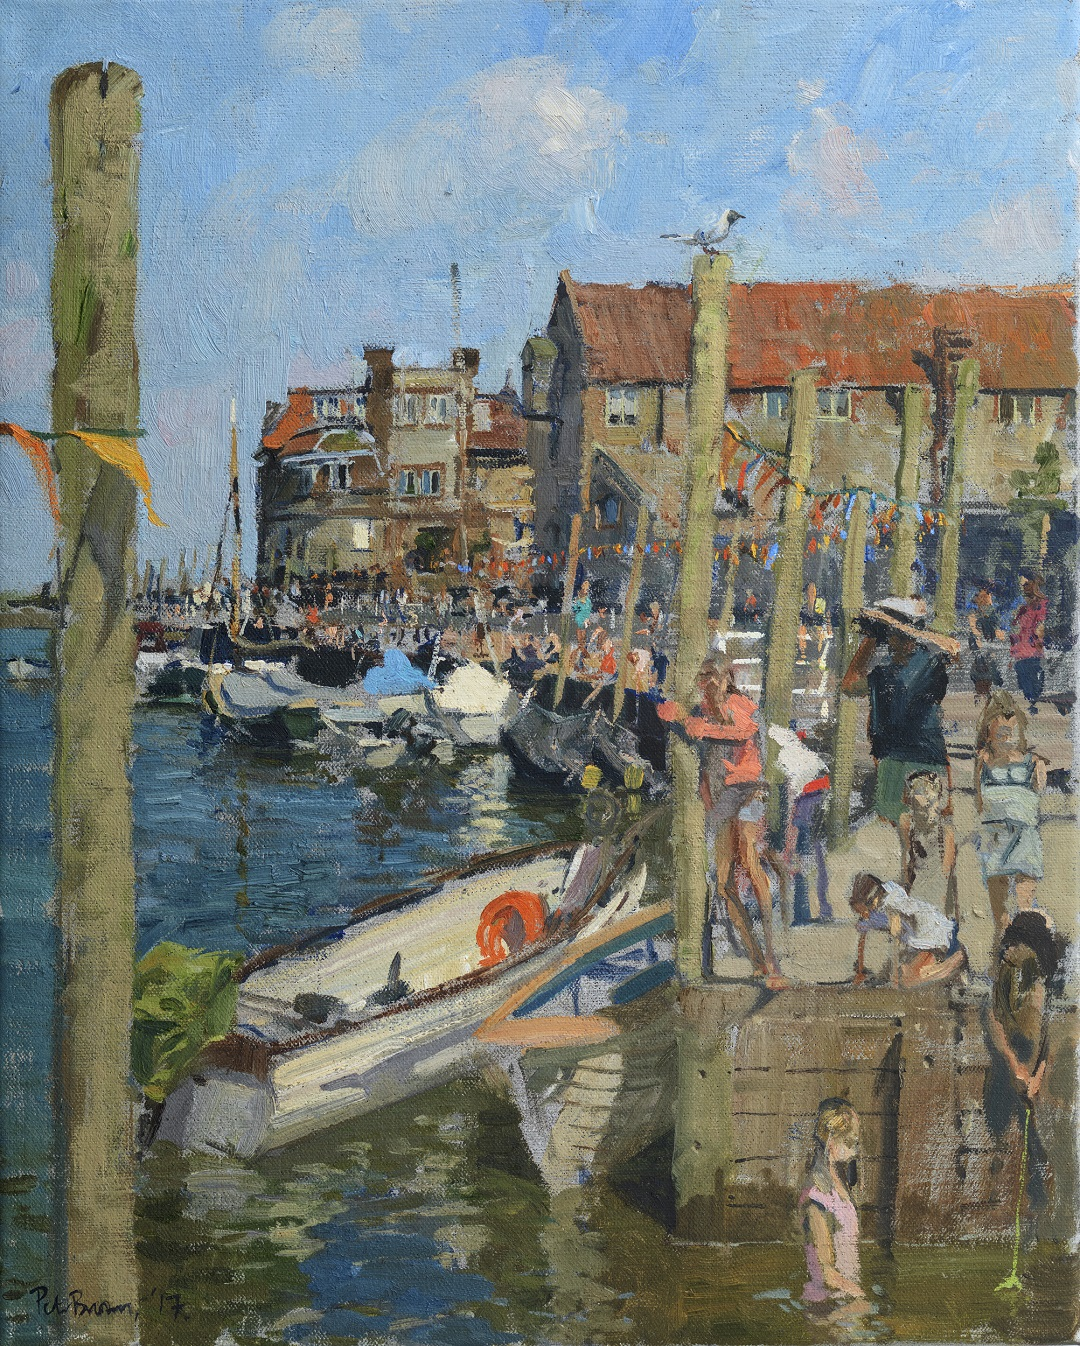 'Crabbing at Blakeney' Peter Brown Oil on canvas 20″ x 16″ 2017